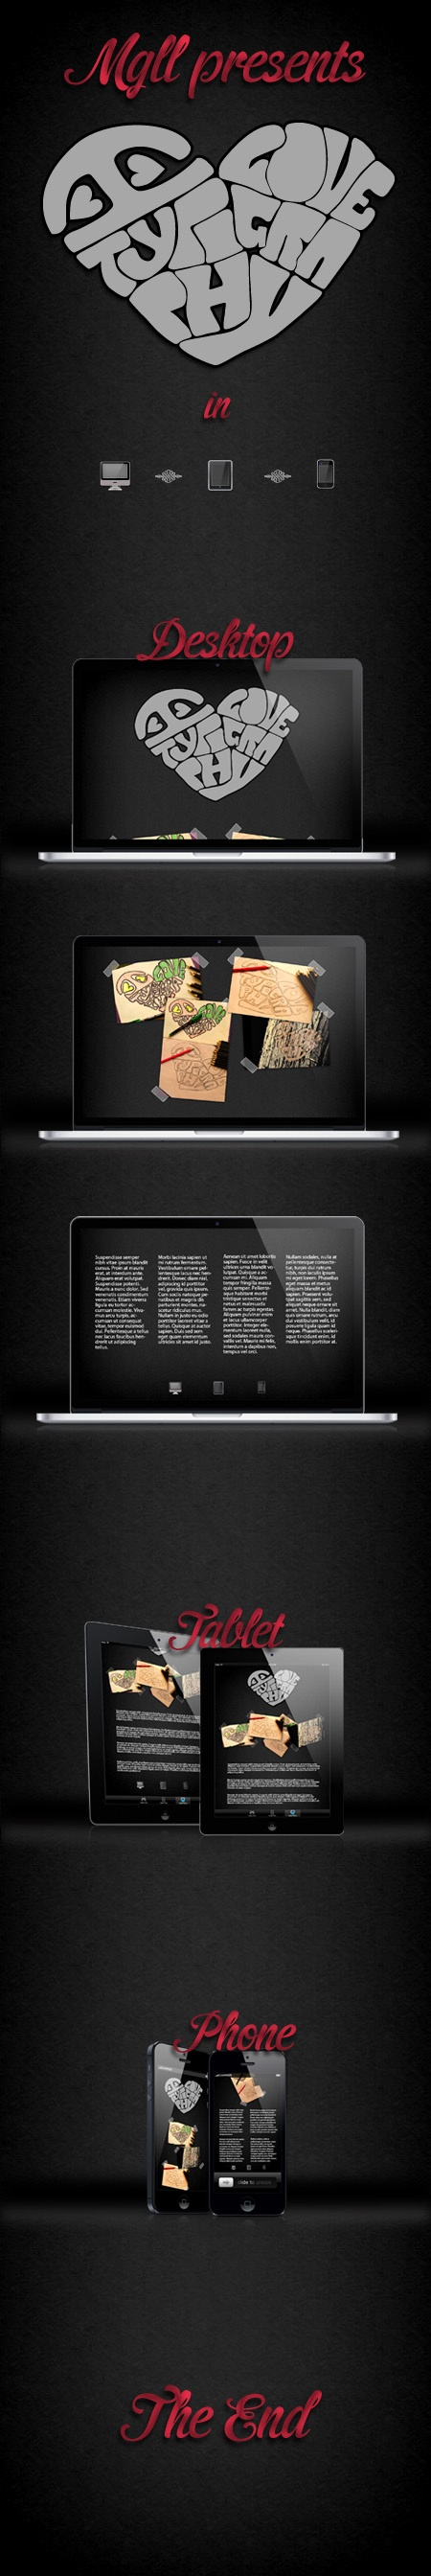 Typographic job made by media queries LL